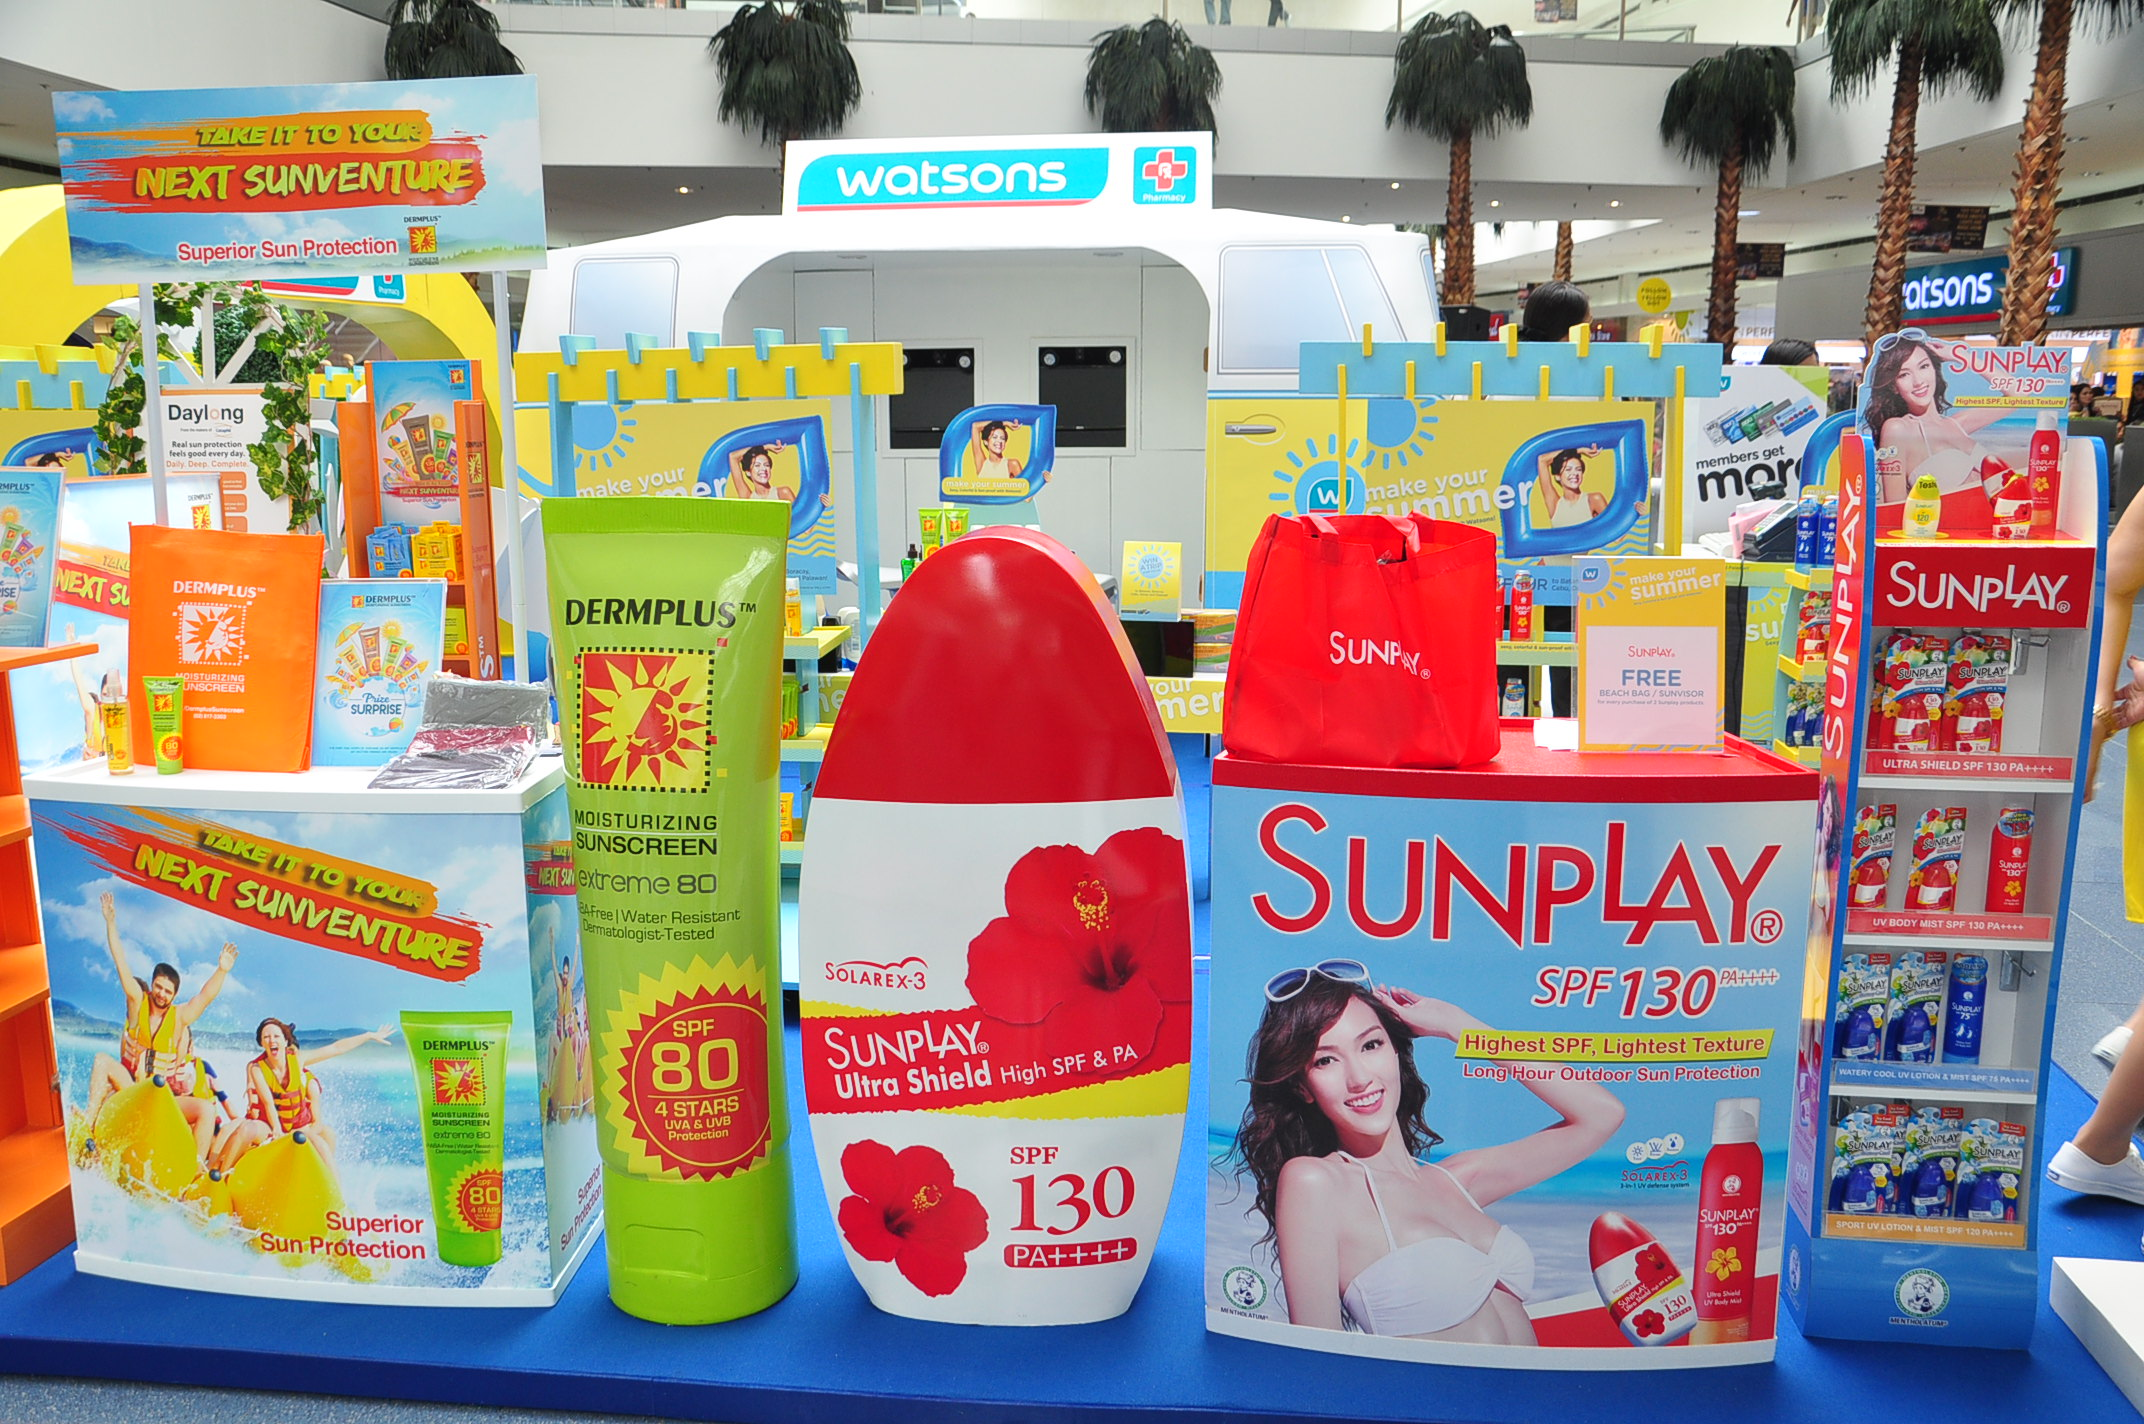 The Watsons Make Your Summer booths that we enjoyed! Someone remind us to get some Sunplay ASAP.